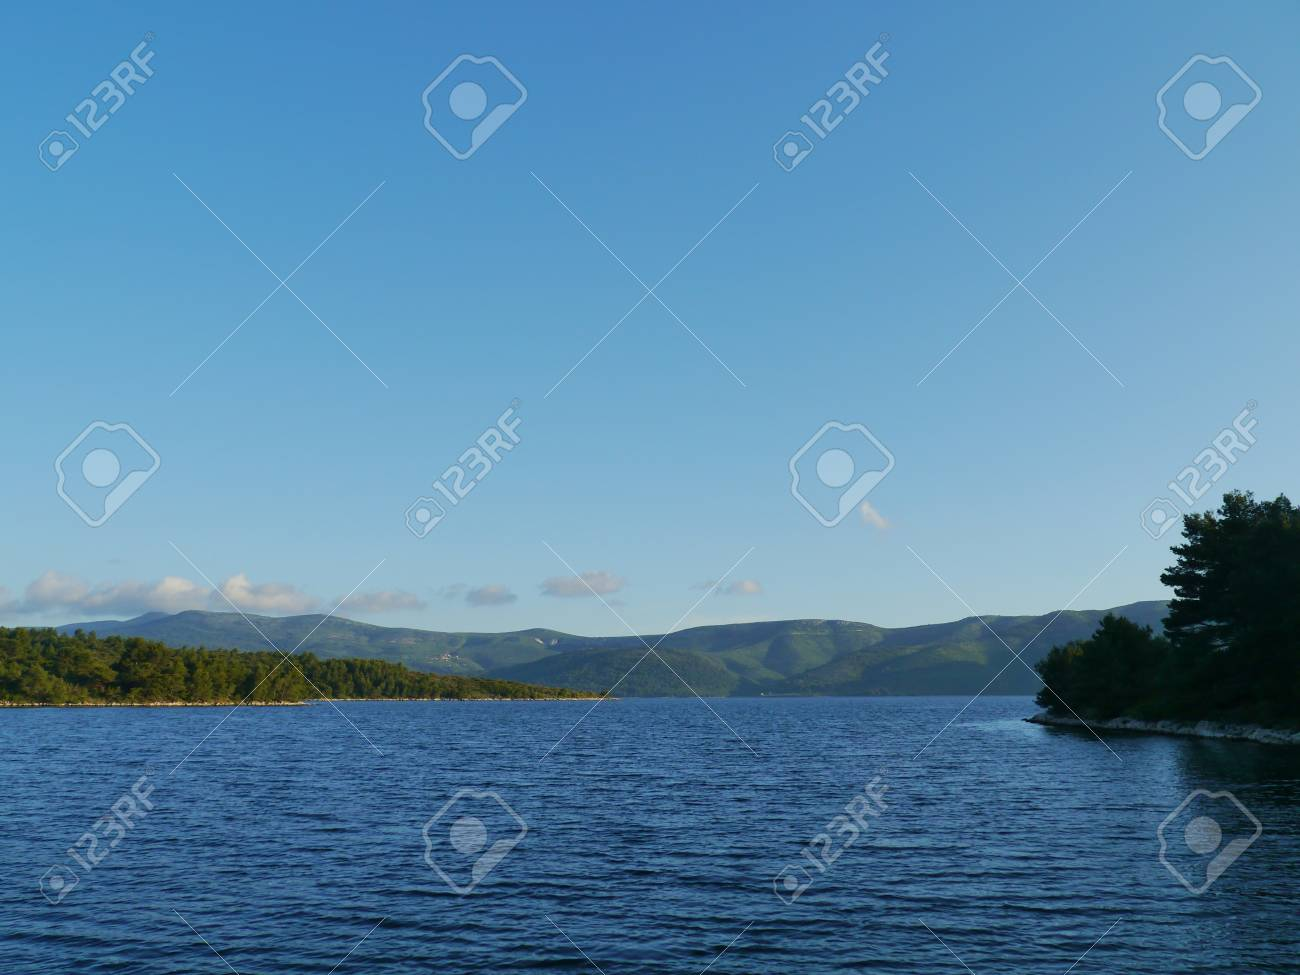 The bay of the Croatian village Polace at the island Mljet in the Adriatic sea of Croatia Stock Photo - 21933113